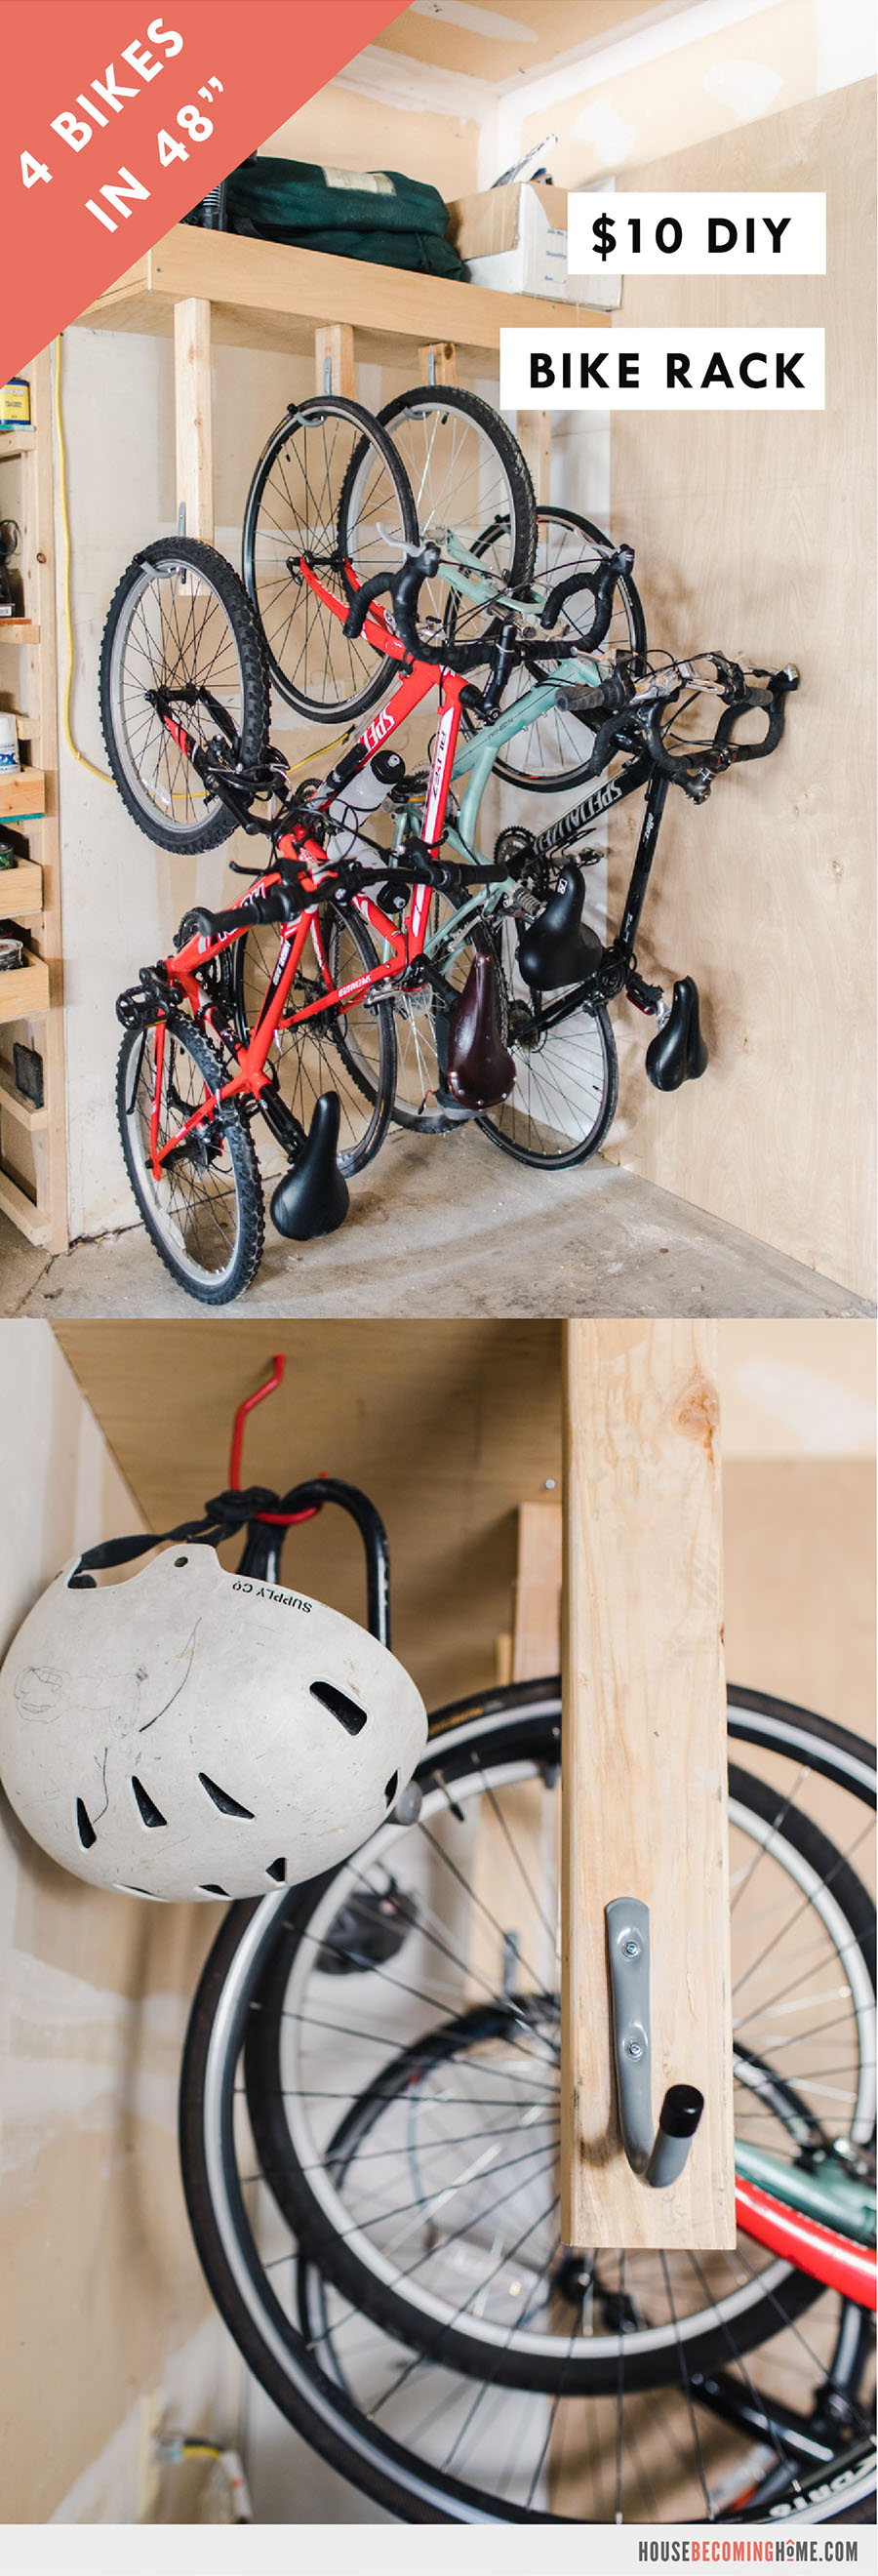 """Make a space-saving DIY Bike Rack that stores four bikes in 48"""" of space. This bike rack is easy to make and super affordable, costing about $10 in materials!"""